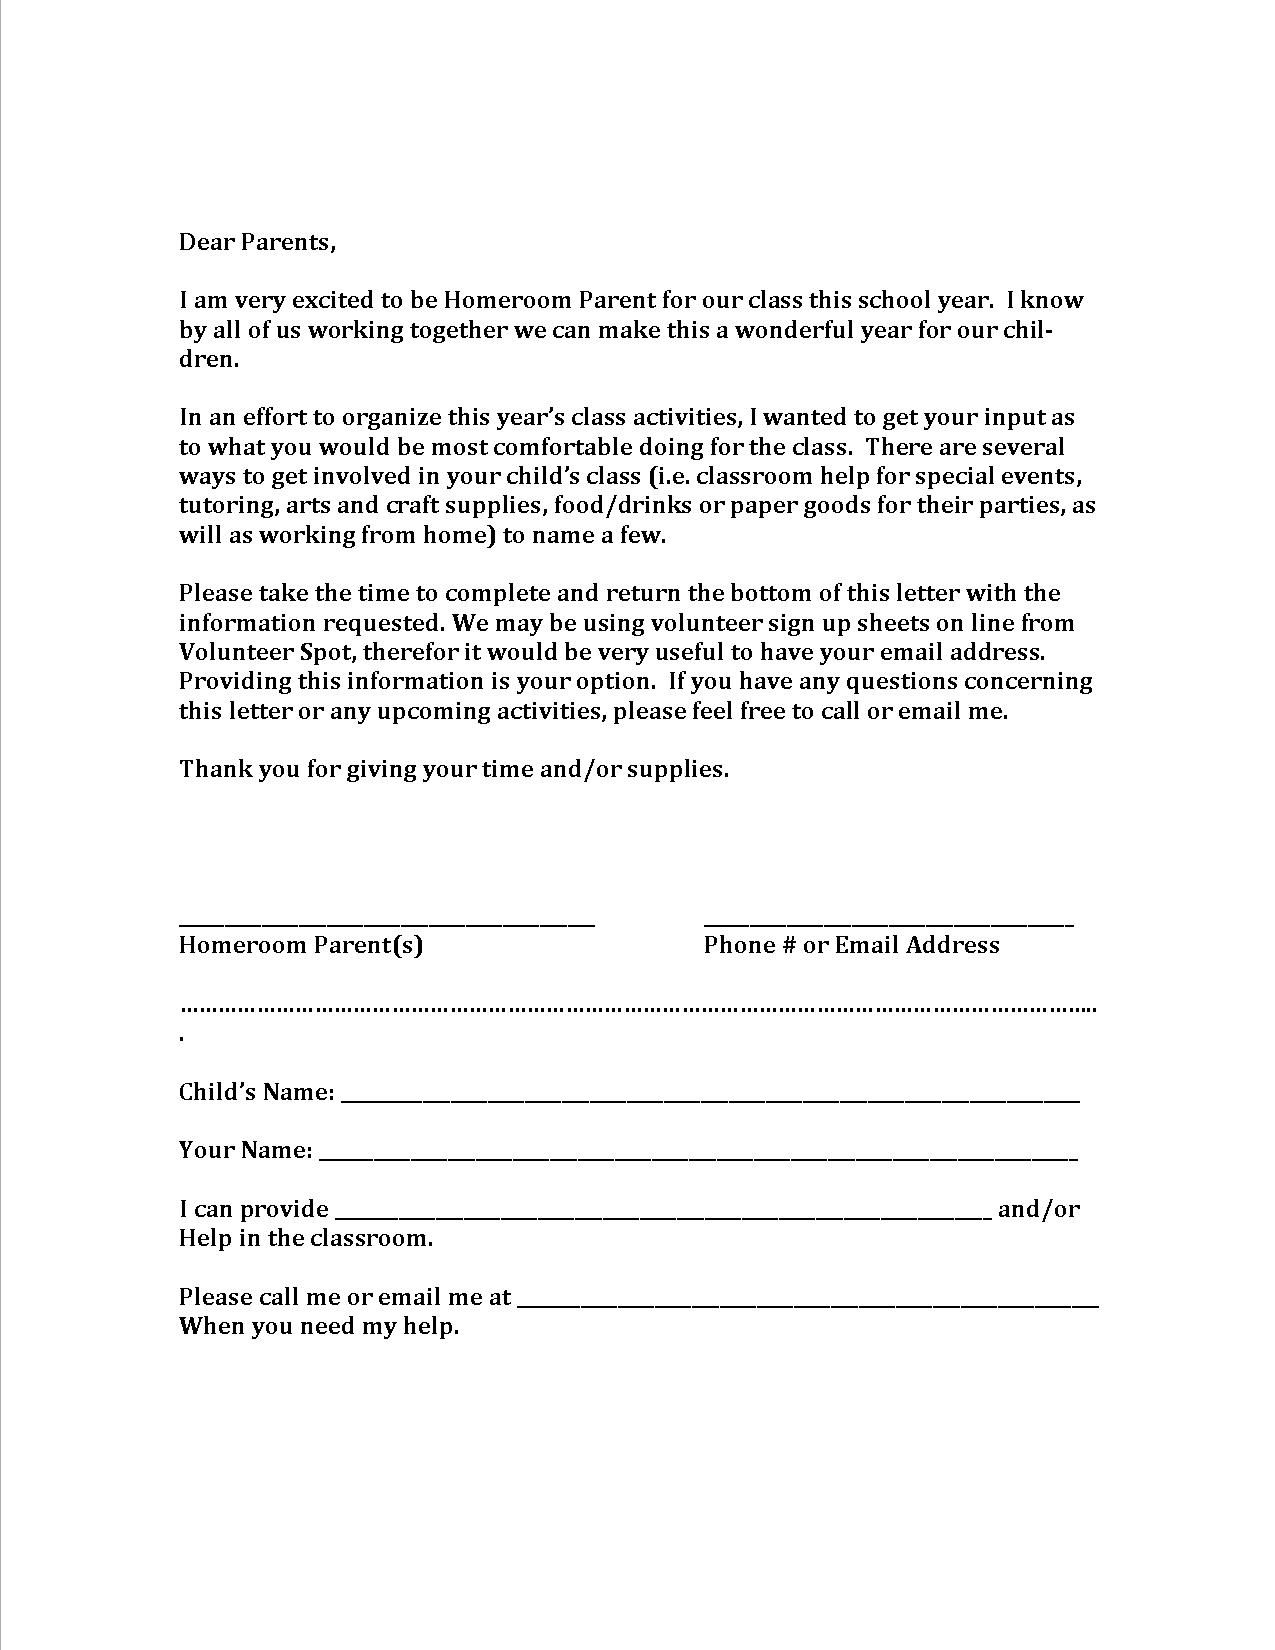 Letters to parents templates six tips for planning productive parent conferences scholastic spiritdancerdesigns Choice Image